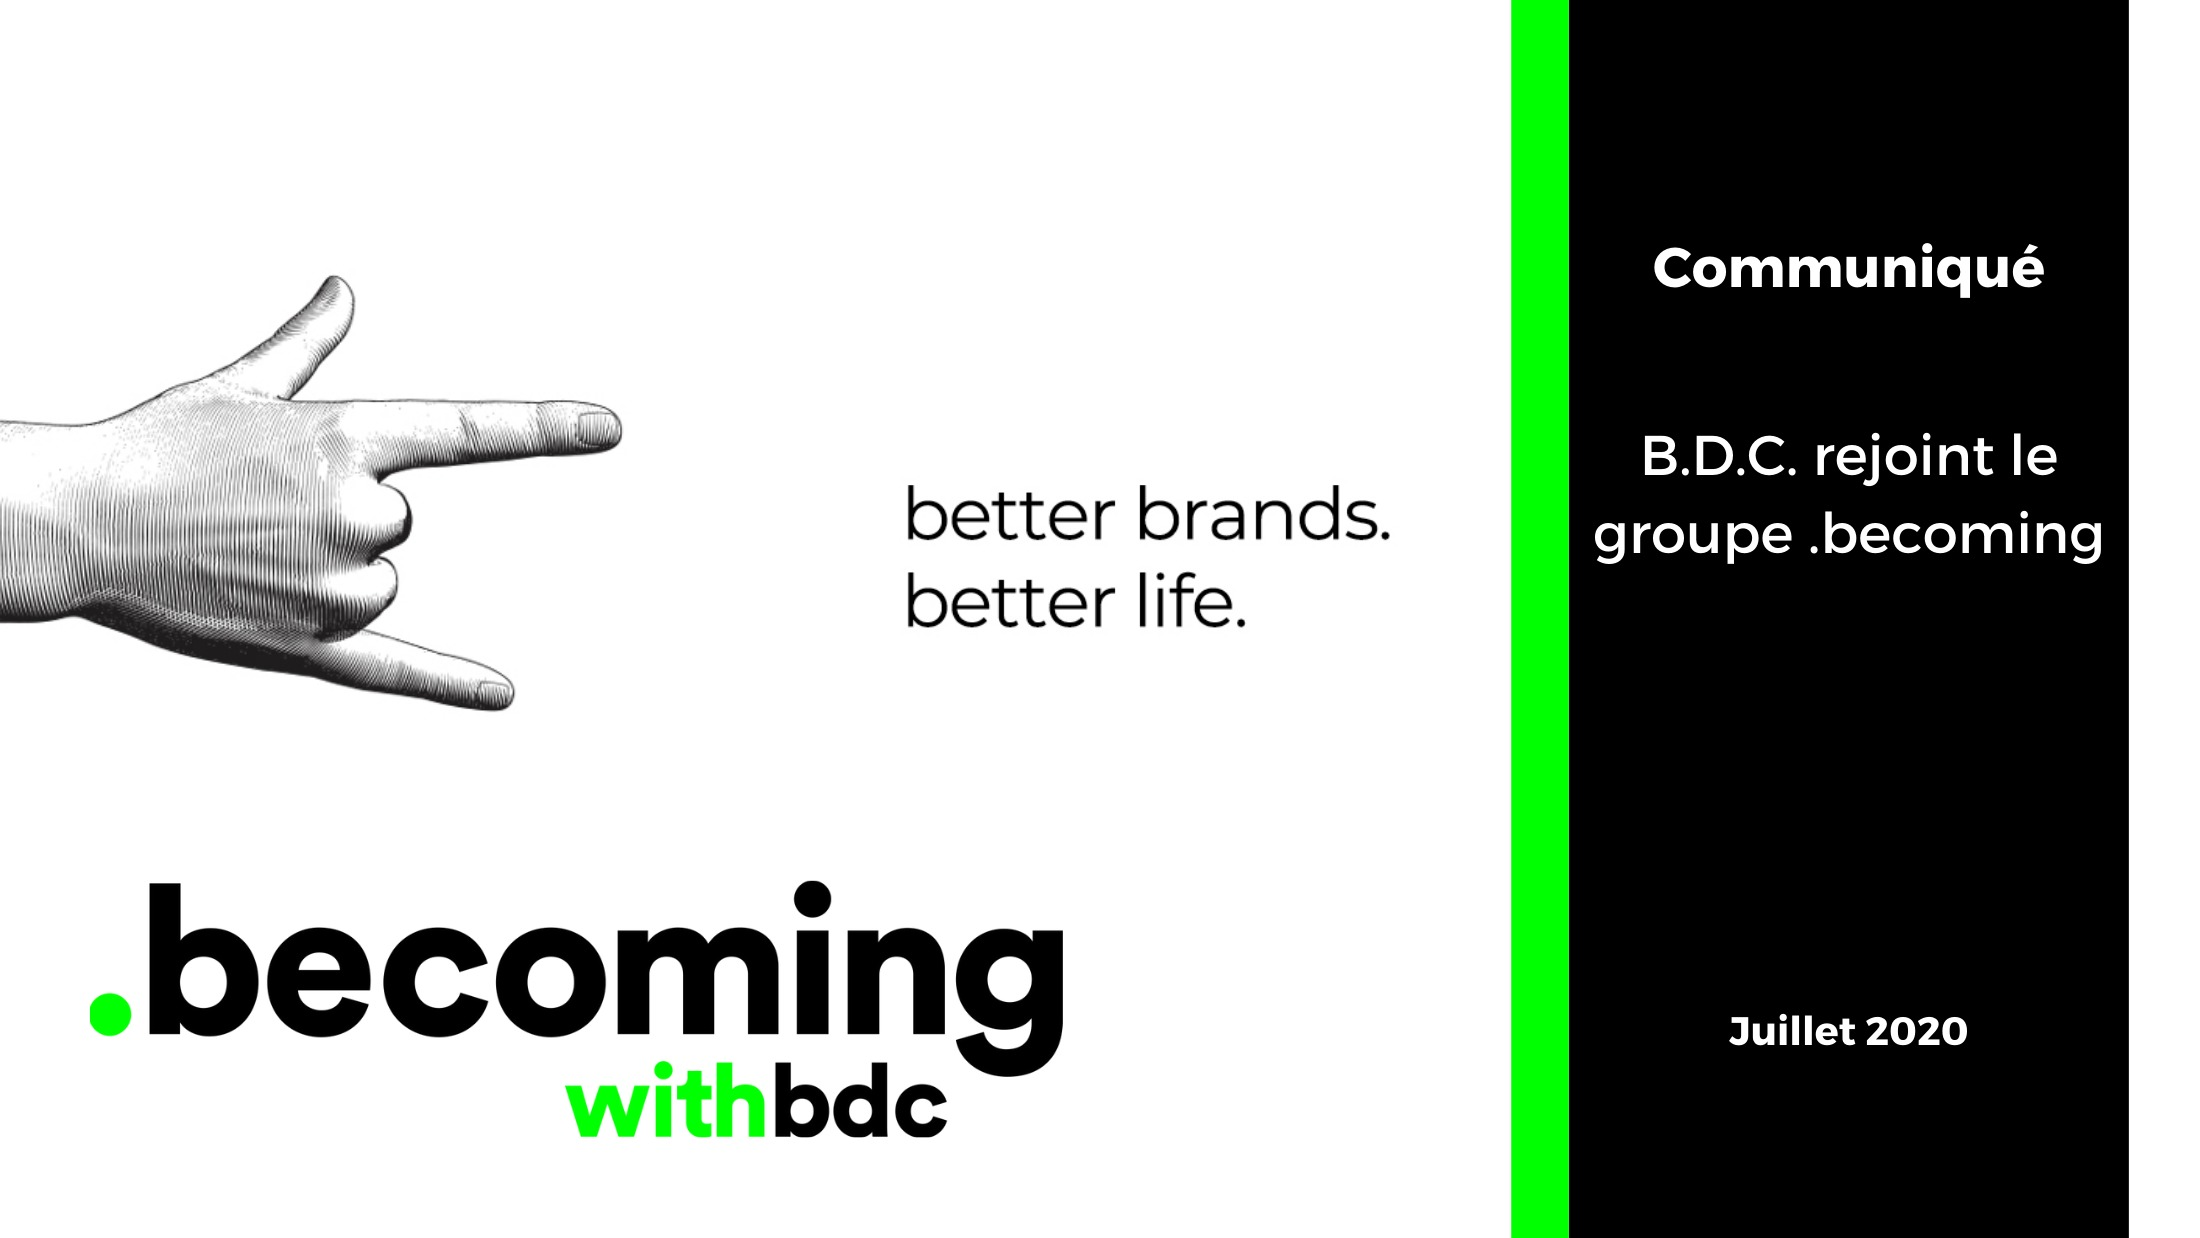 Experience client 8 - B.D.C. rejoint le groupe .becoming !